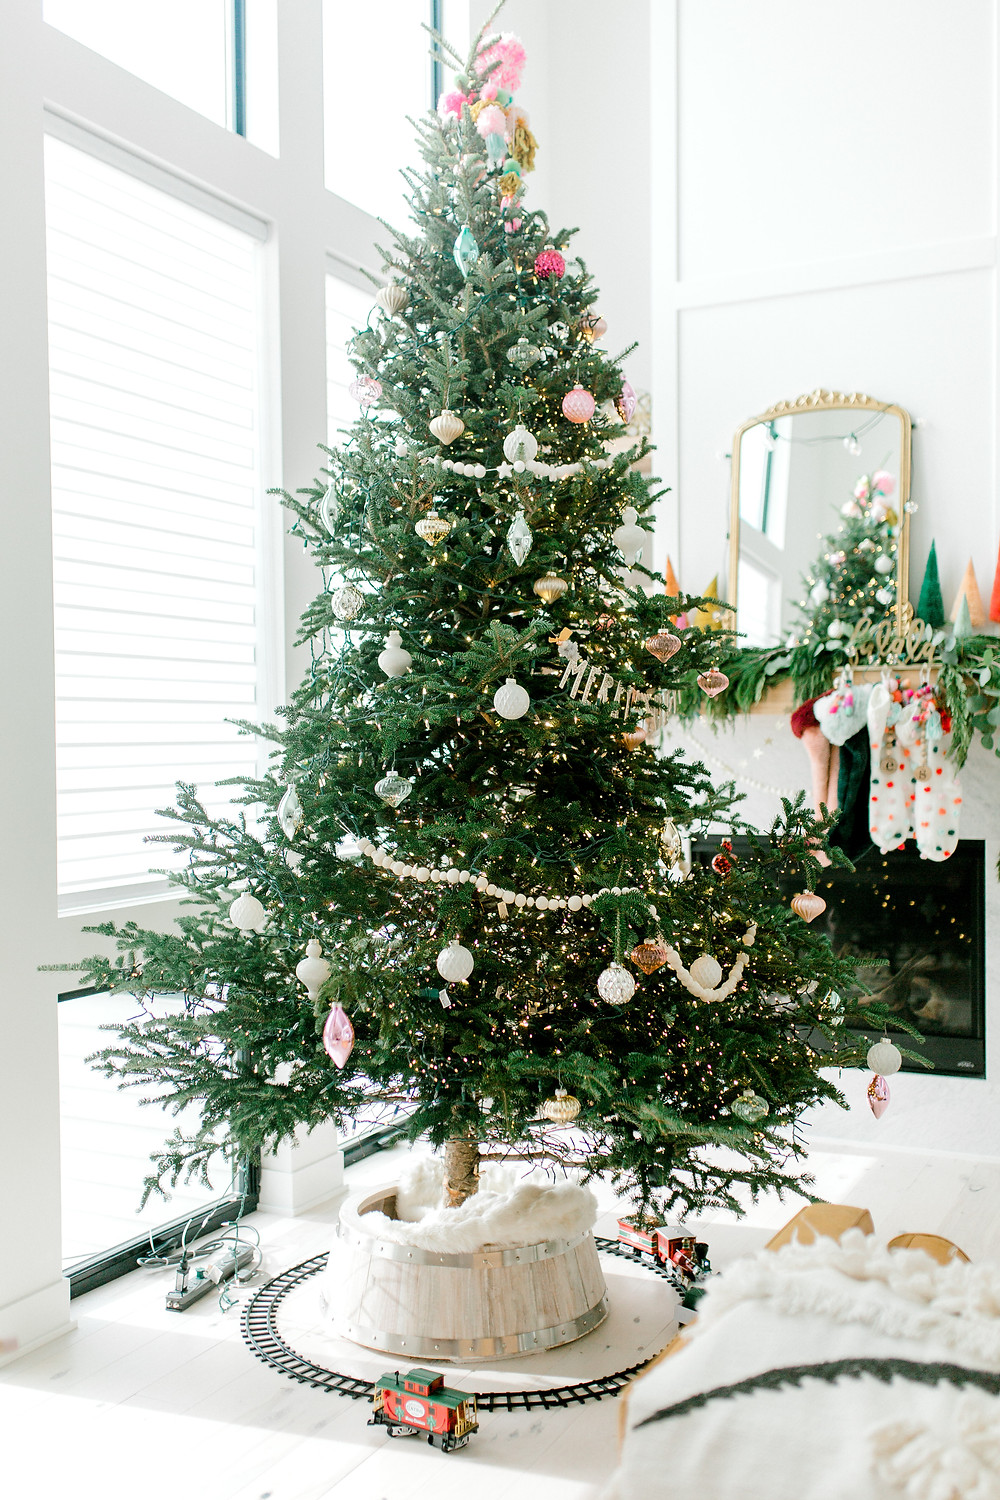 A Christmas tree decorated with metallic and pink ornaments and a decorated fireplace in the background with a gold framed mirror, mini Christmas trees, garland and stockings.